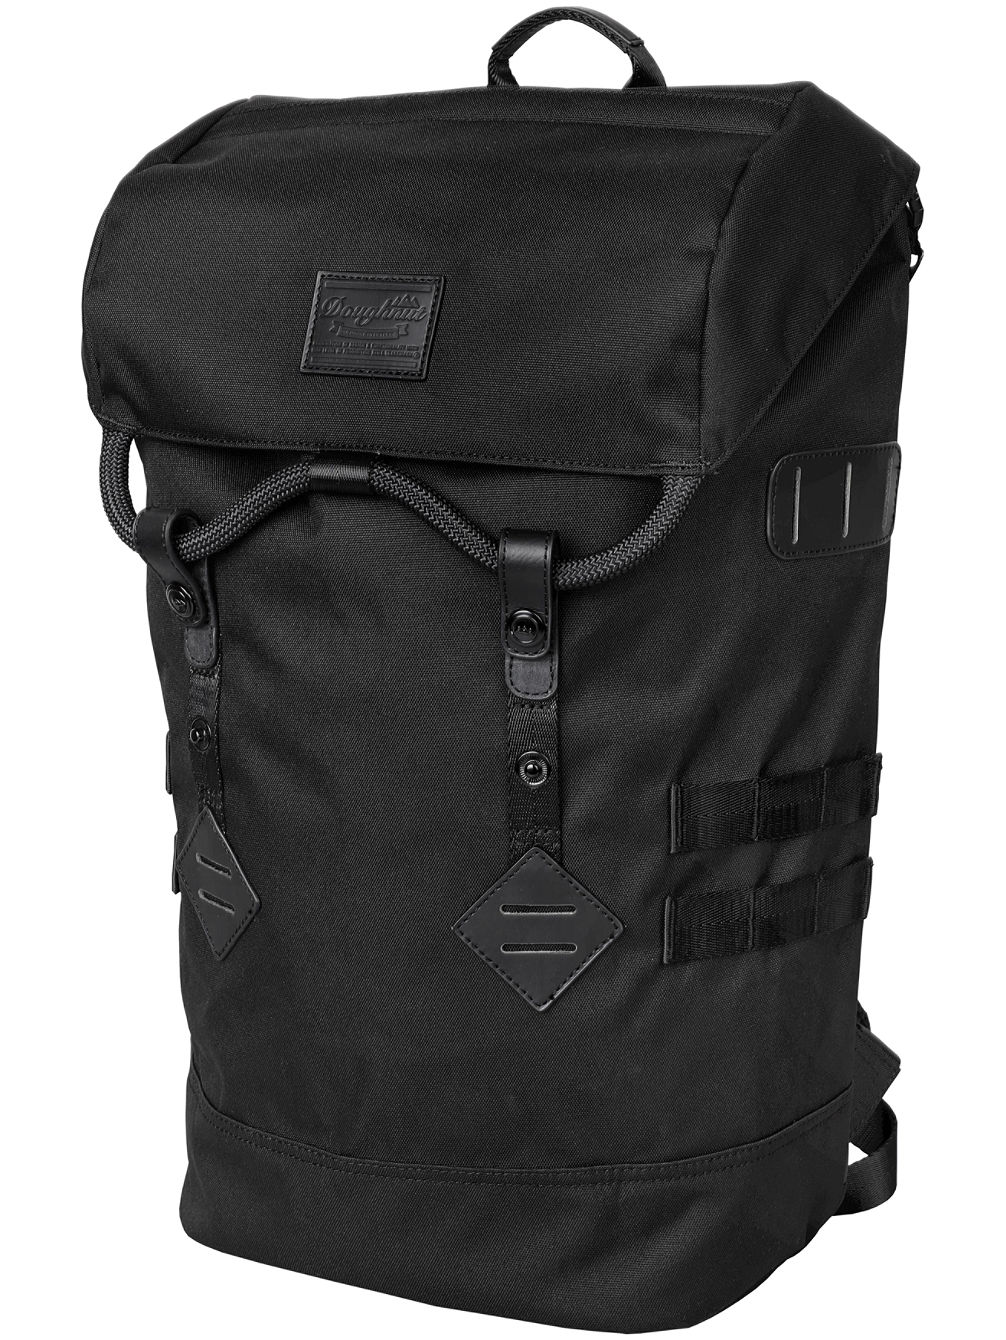 Colorado All Black Series Mochila